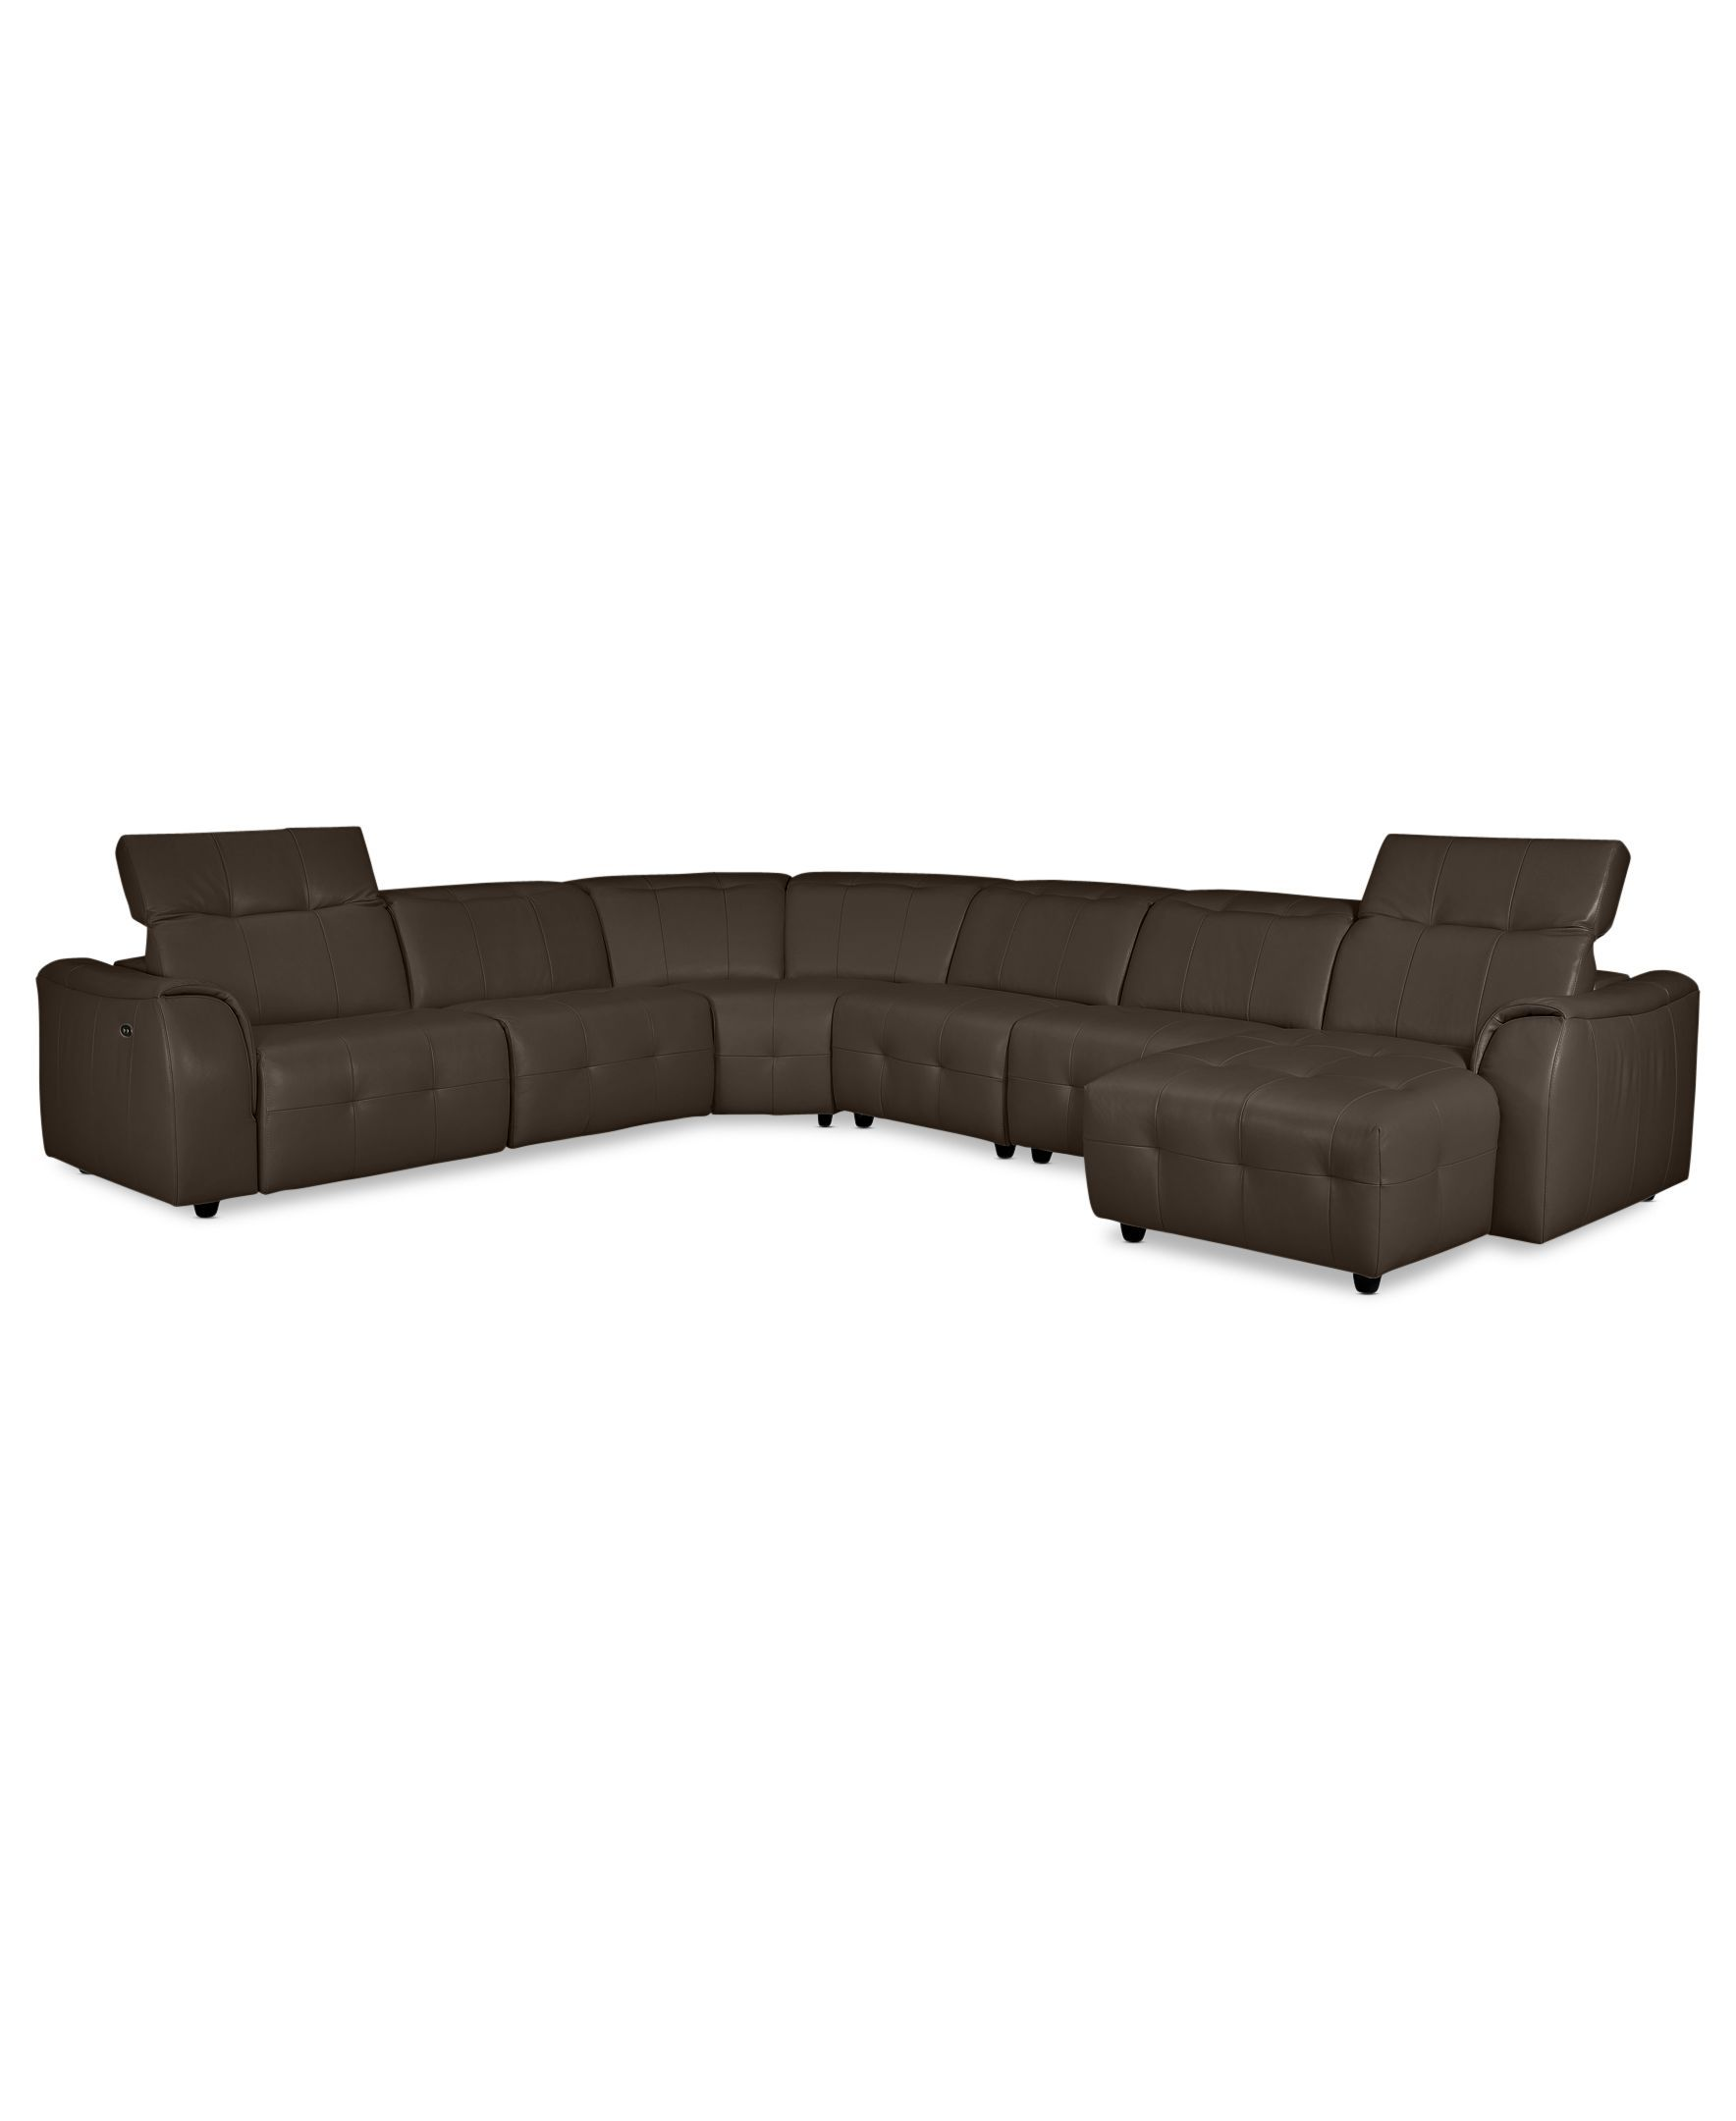 Novara Leather 6 Piece Power Reclining Sectional Sofa Power